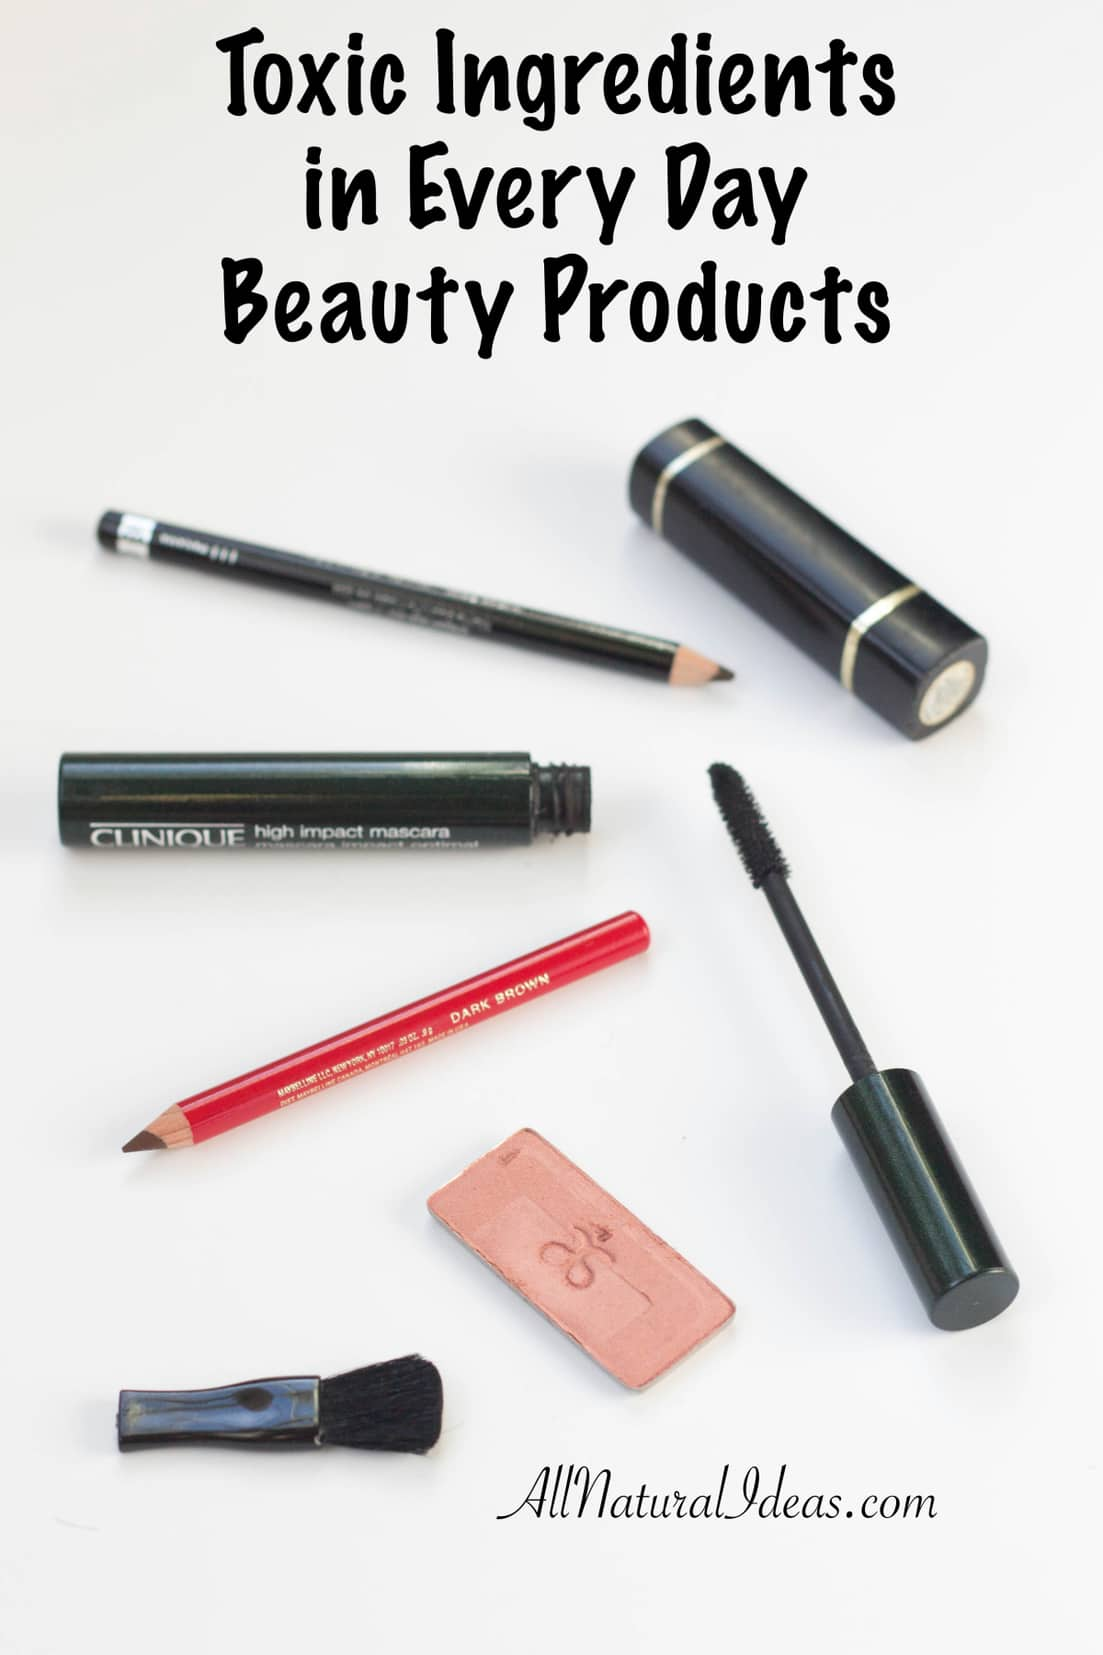 Are you aware of beauty product toxic ingredients? There are a large number beauty product containing toxic ingredients which have been found to be harmful. Make a switch to natural cosmetics!